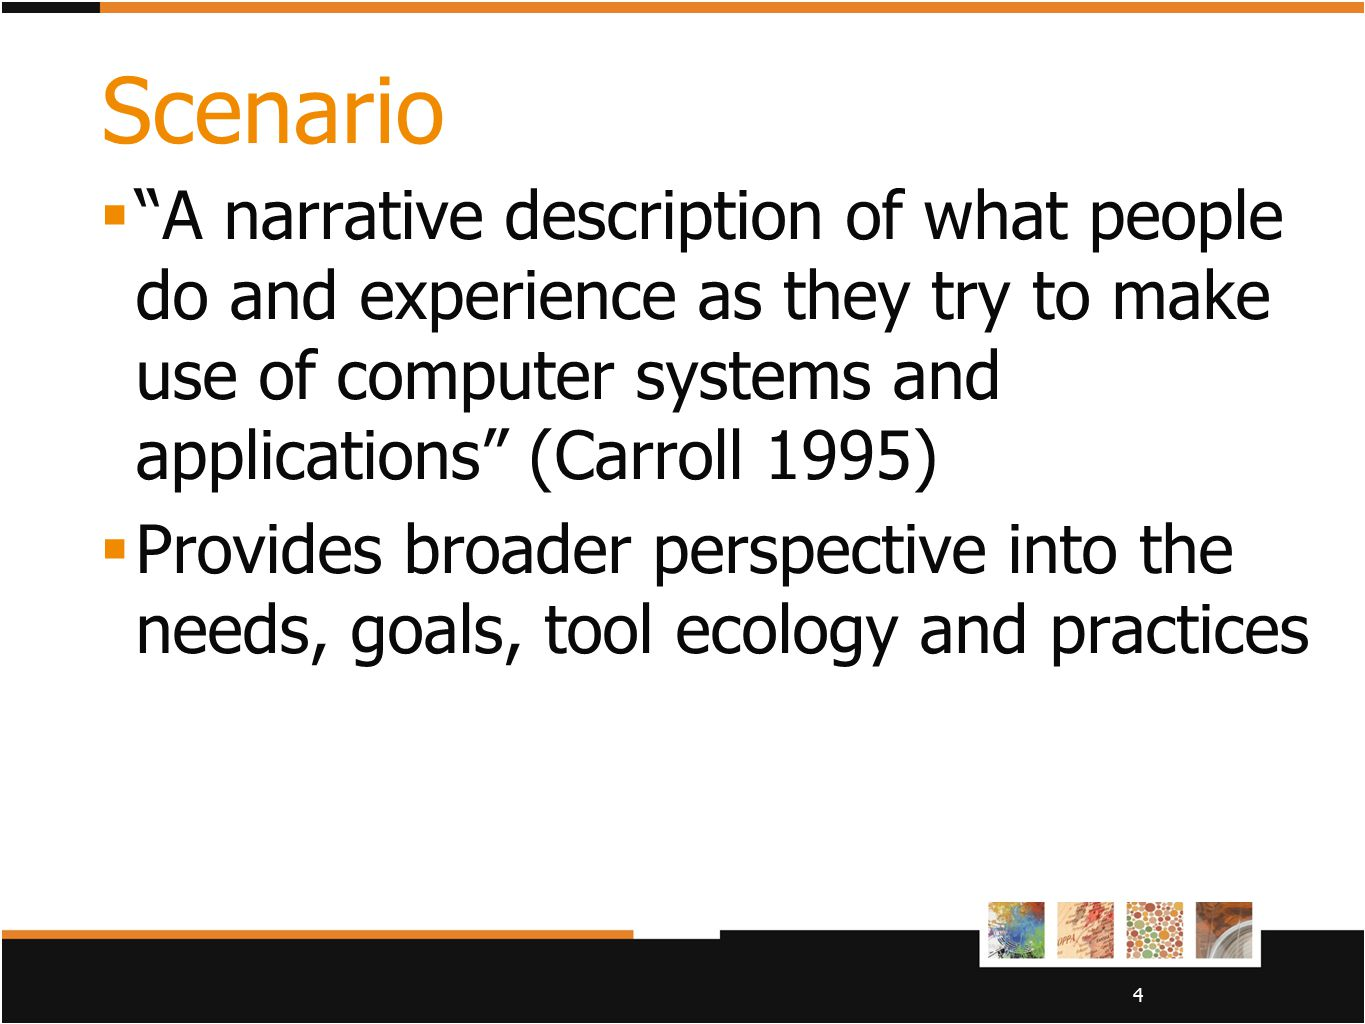 Scenario A narrative description of what people do and experience as they try to make use of computer systems and applications (Carroll 1995)